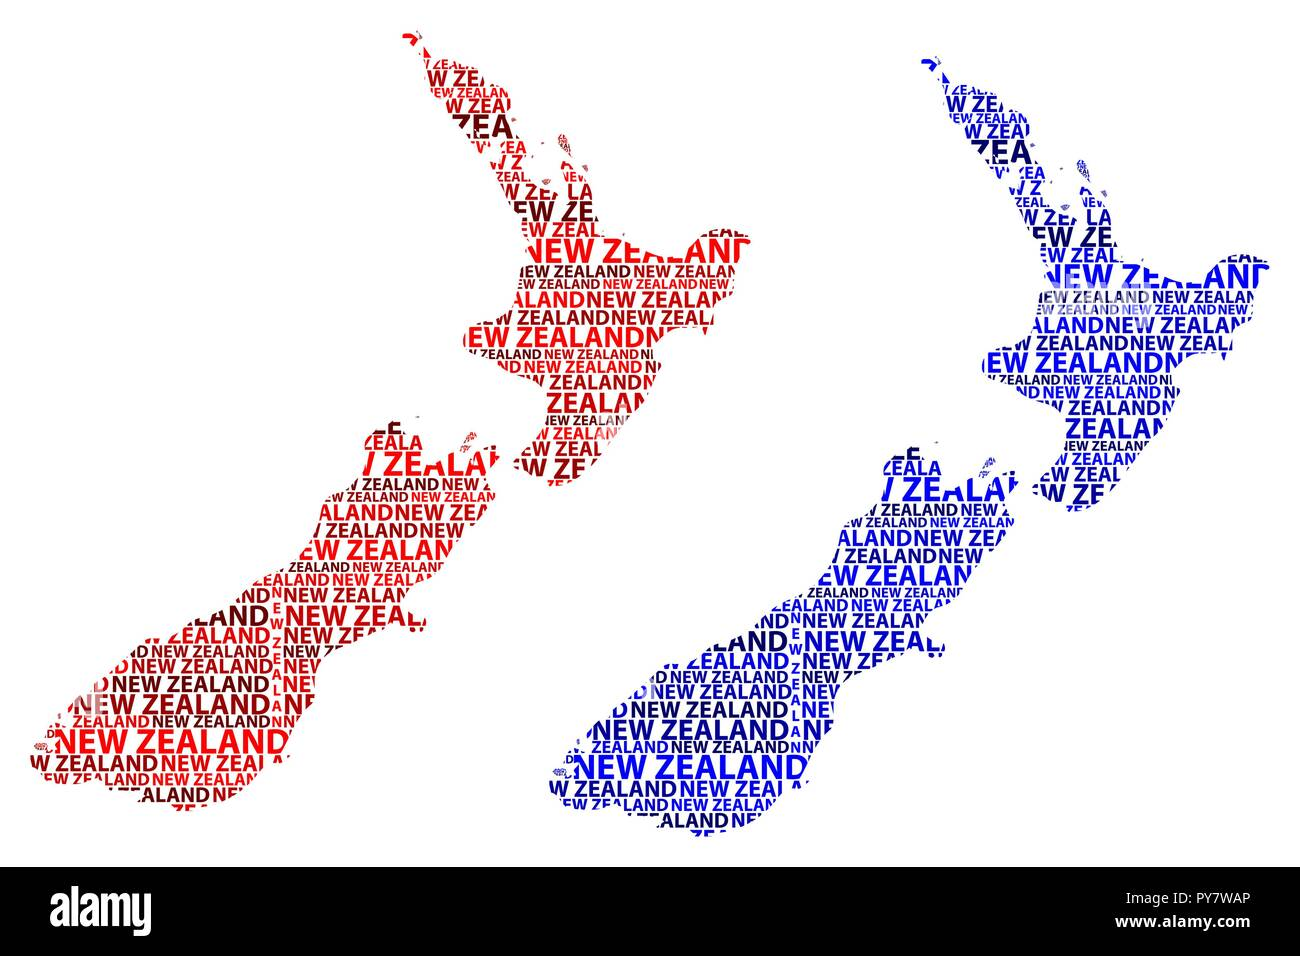 Sketch New Zealand letter text map, New Zealand - in the shape of the continent, Map New Zealand - red and blue vector illustration - Stock Image